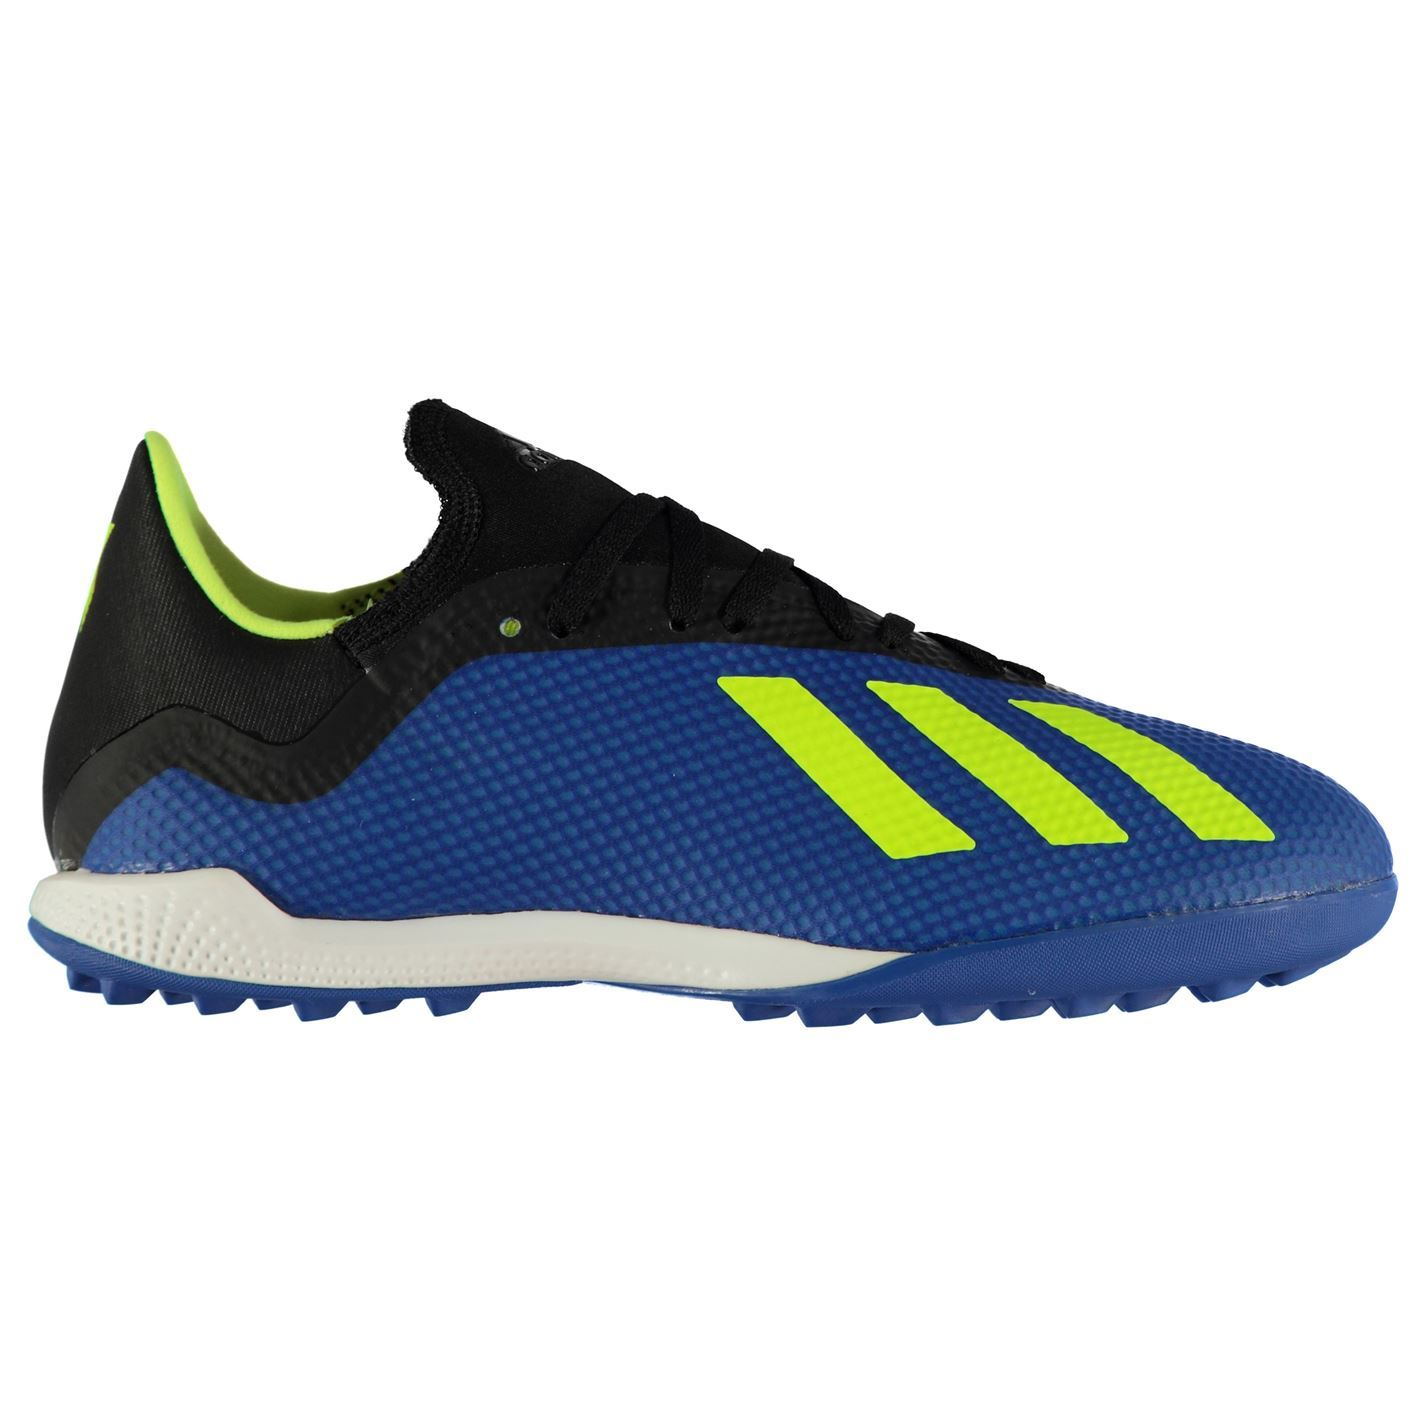 adidas-Mens-X-Tango-18-3-Astro-Turf-Trainers-Football-Boots-Lace-Up-Lightweight